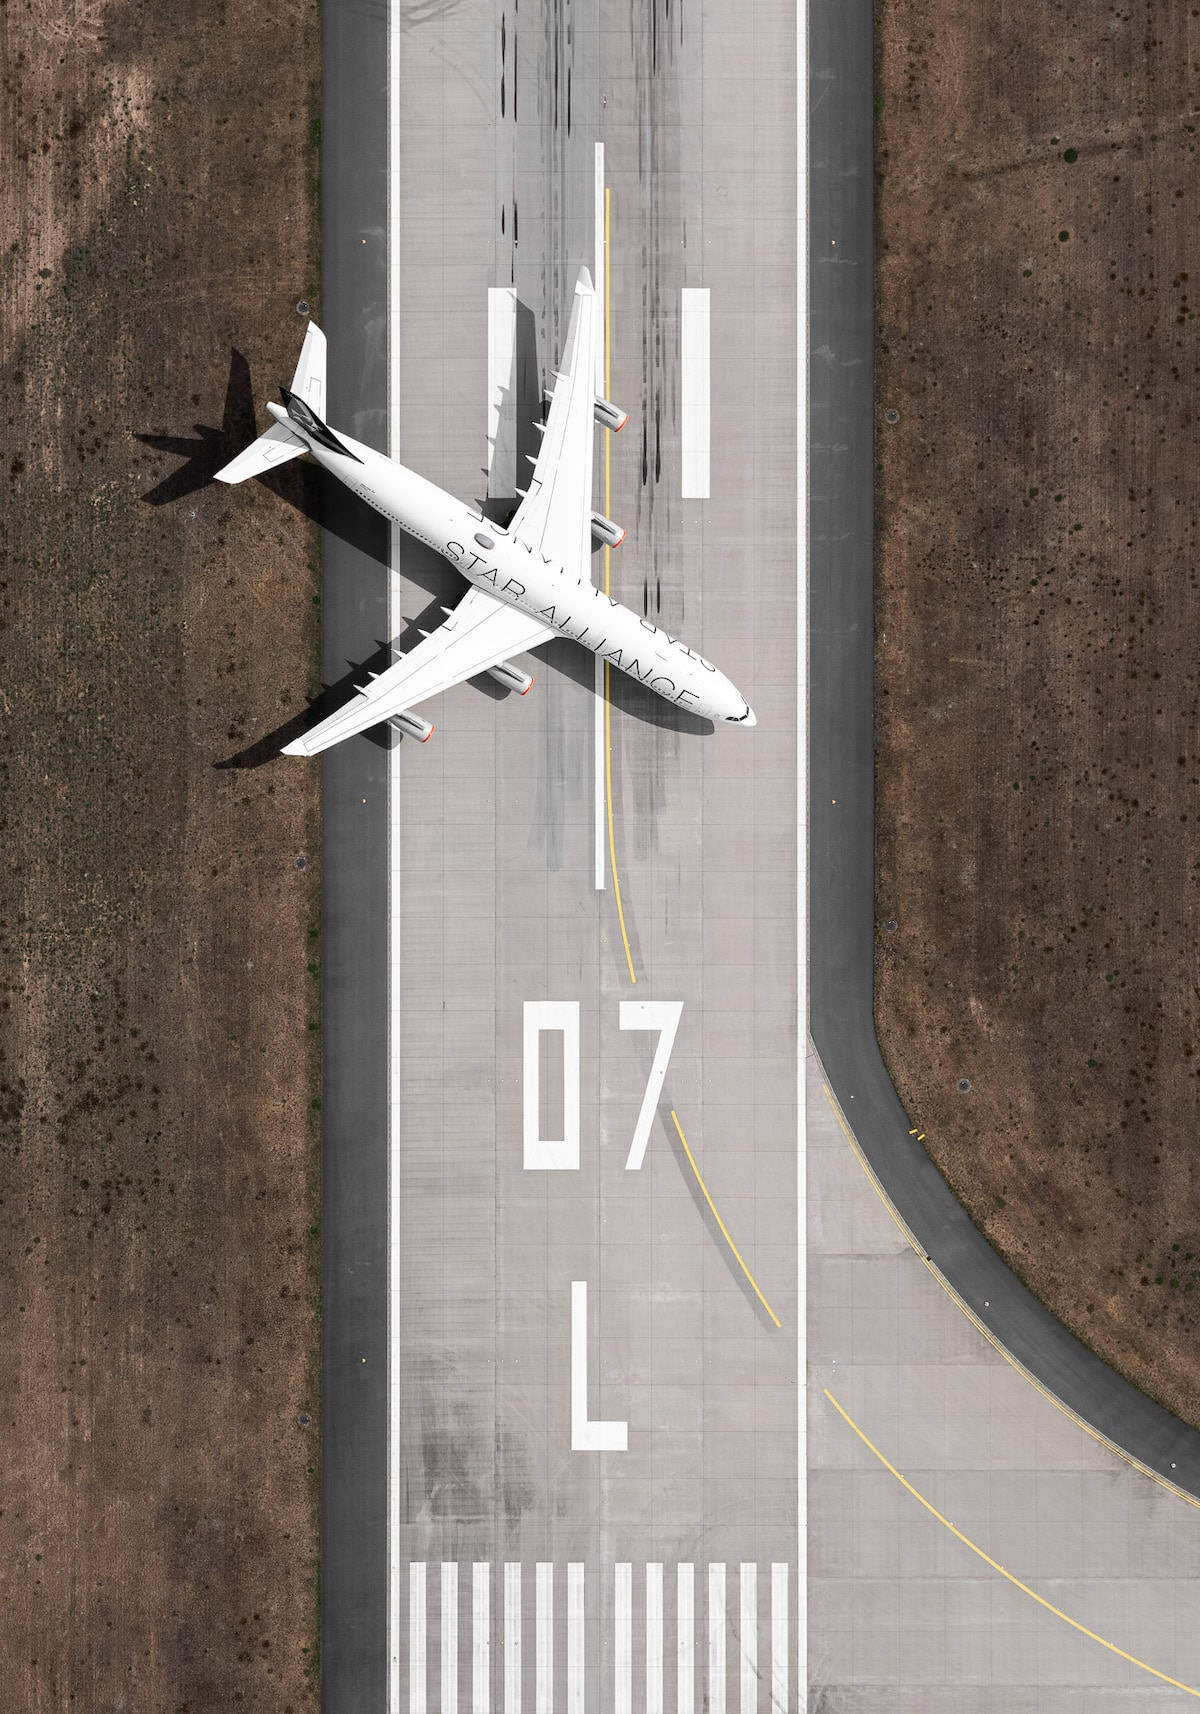 Airplane on a Landing Strip